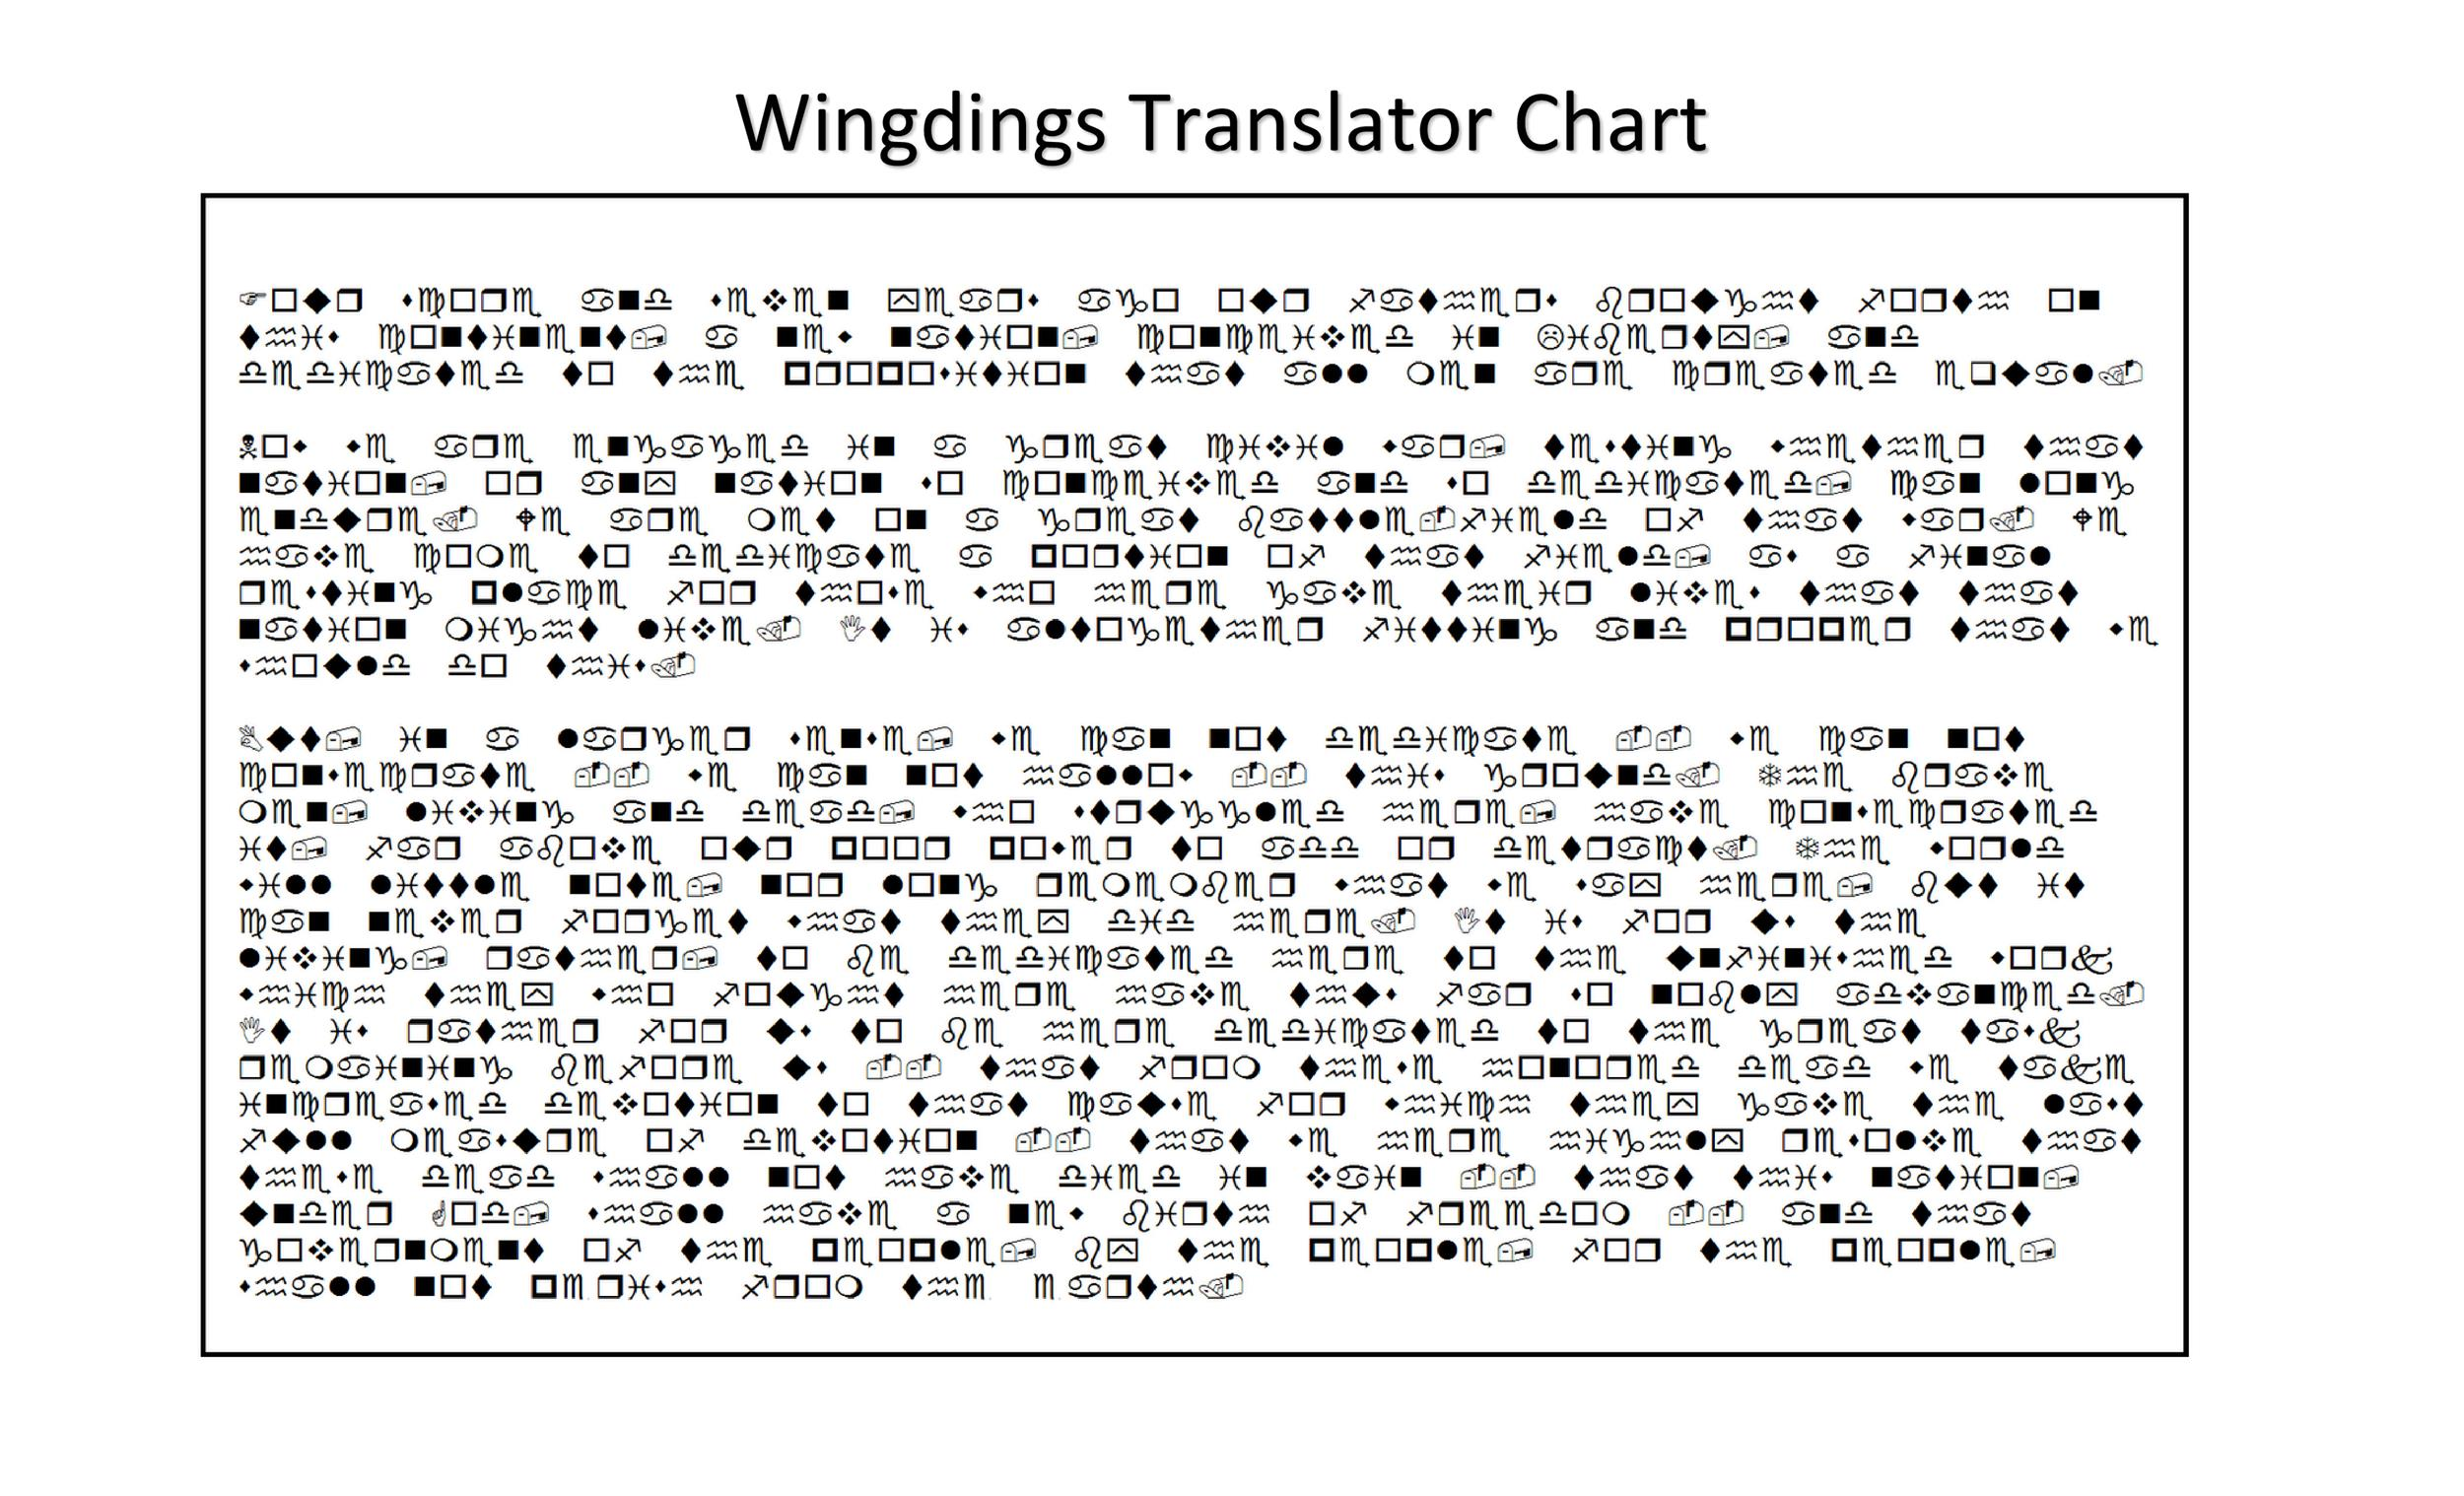 Free wingdings translator template 07